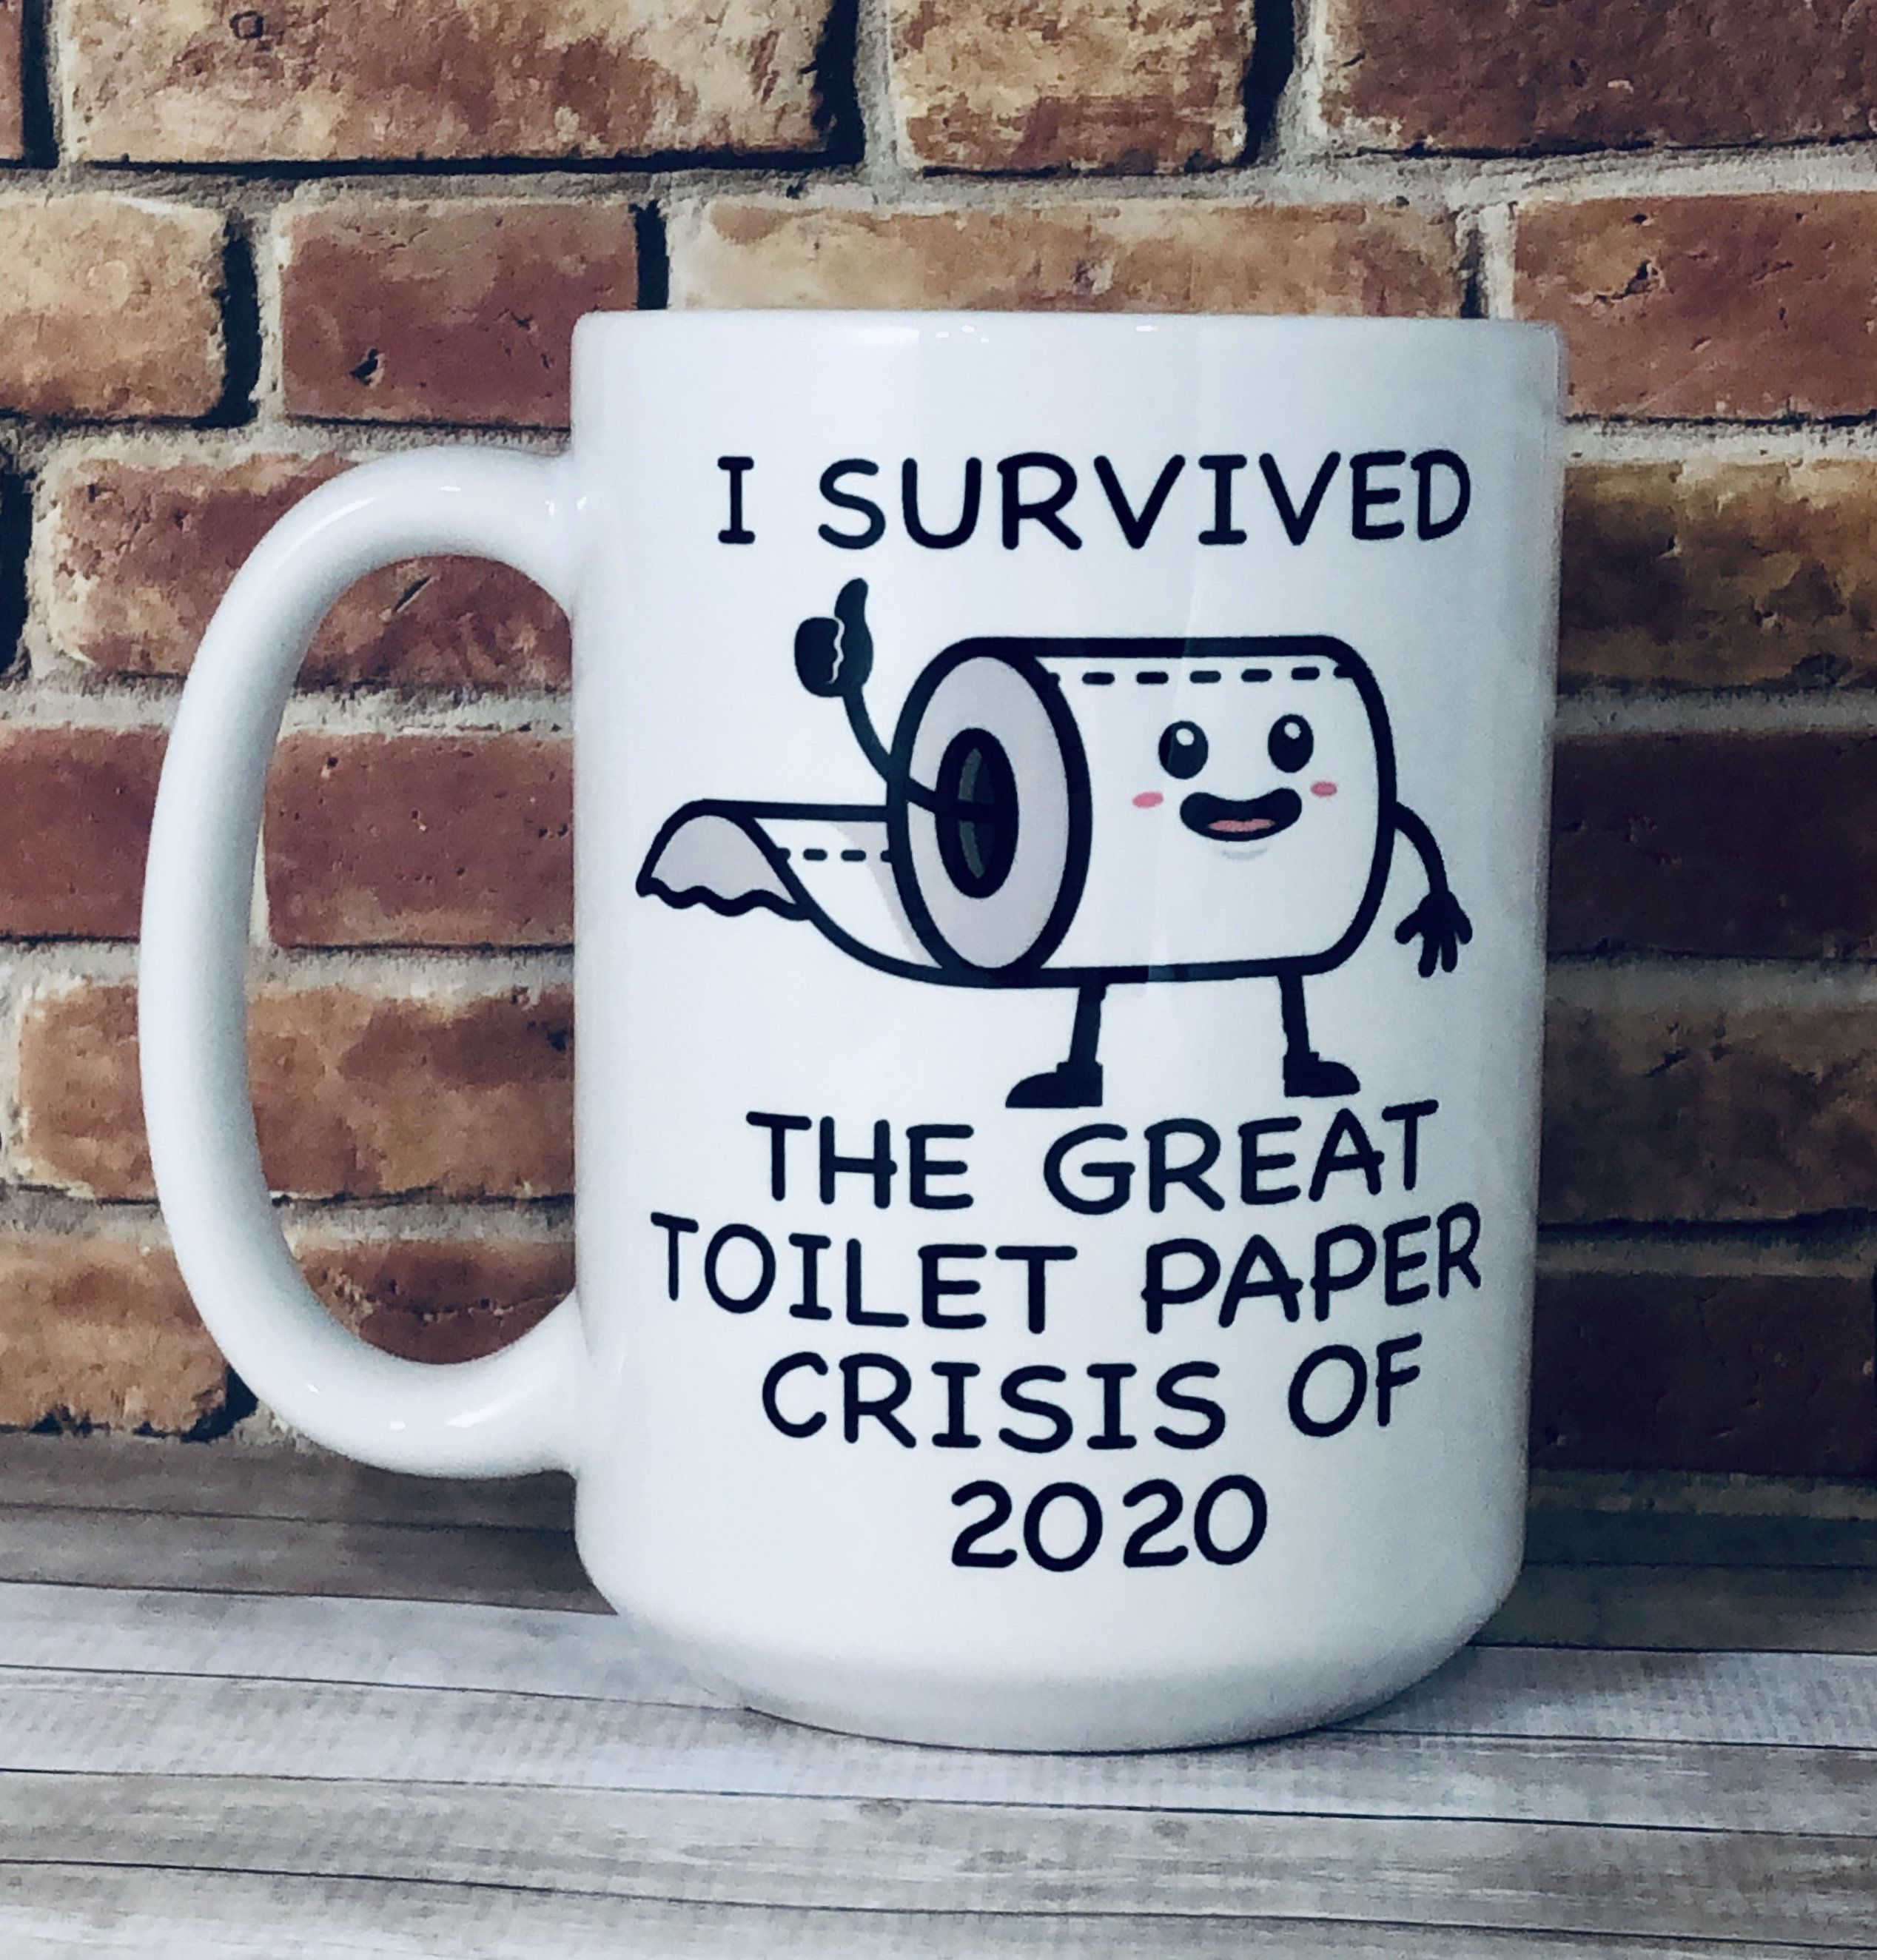 Funny Mug I Survived Toilet Paper Crisis 2020 Big Coffee Cup Tp Shortage Gag Gift Toilet Paper Guy Gift For Him Gift For Her In